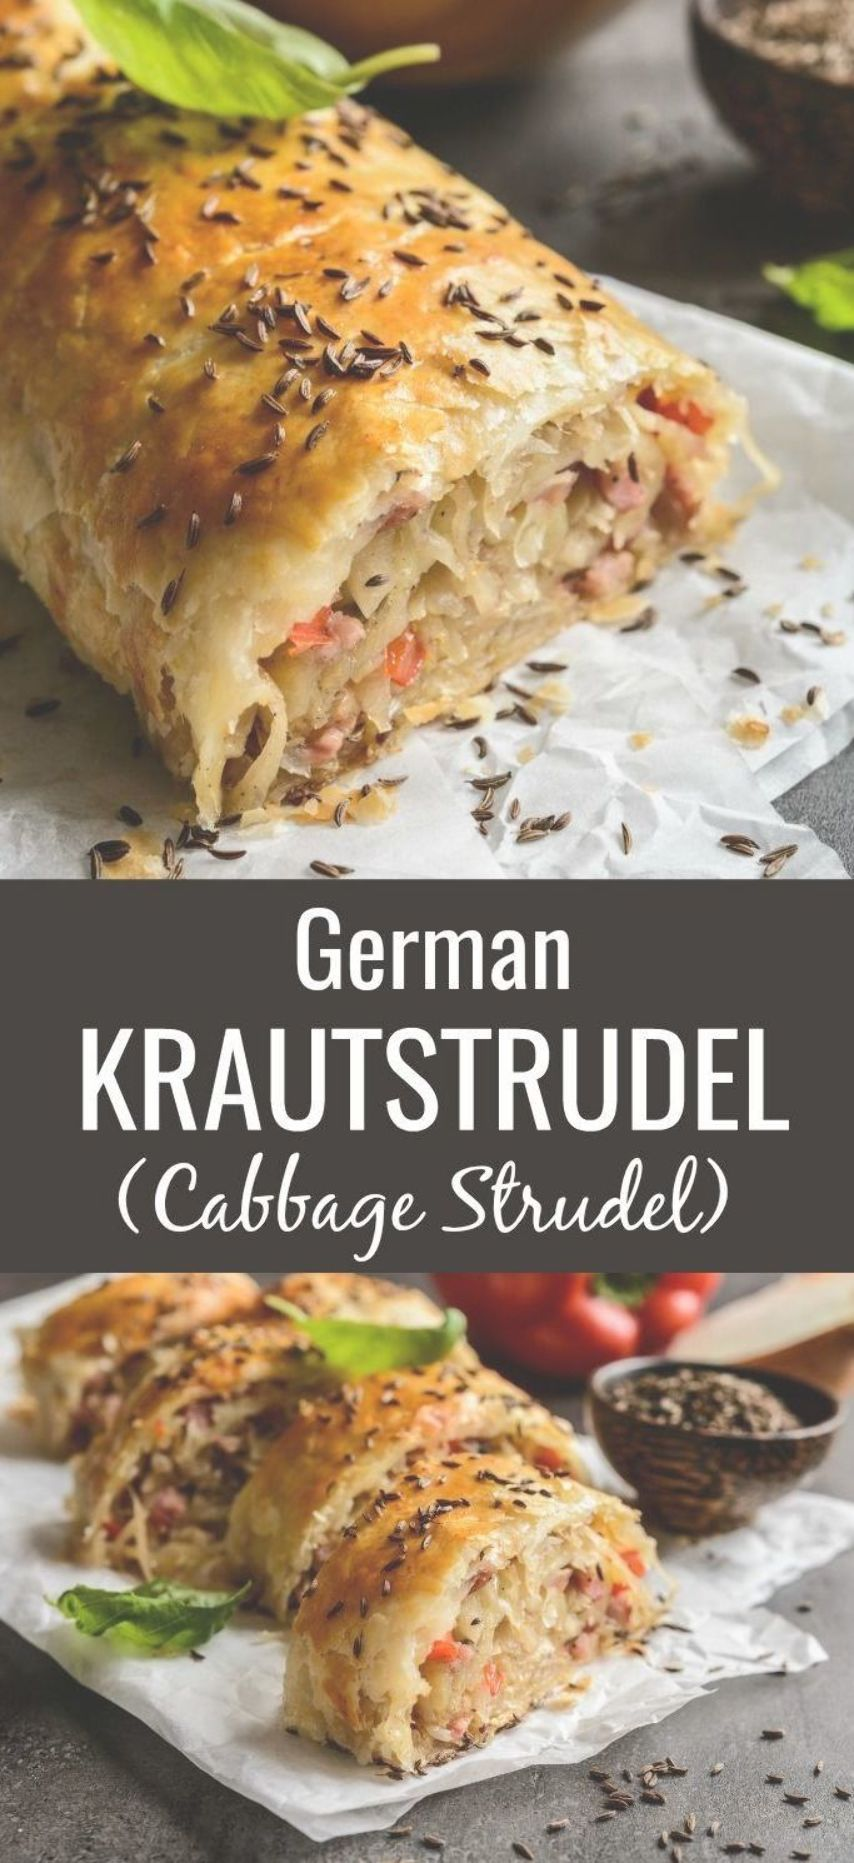 German Krautstrudel is a delightfully easy savory cabbage roll perfect for the season With soft sauteed strands of cabbage the smoky flavor of baconand savory crunc...